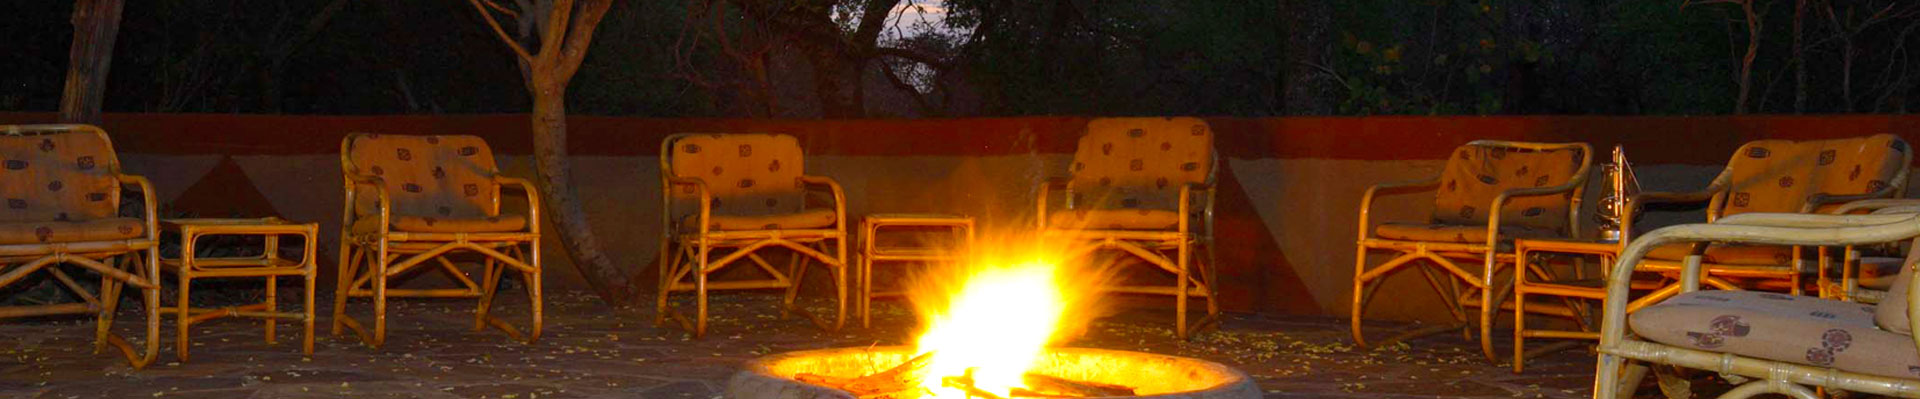 The camp fire awaits at Melorani Safaris